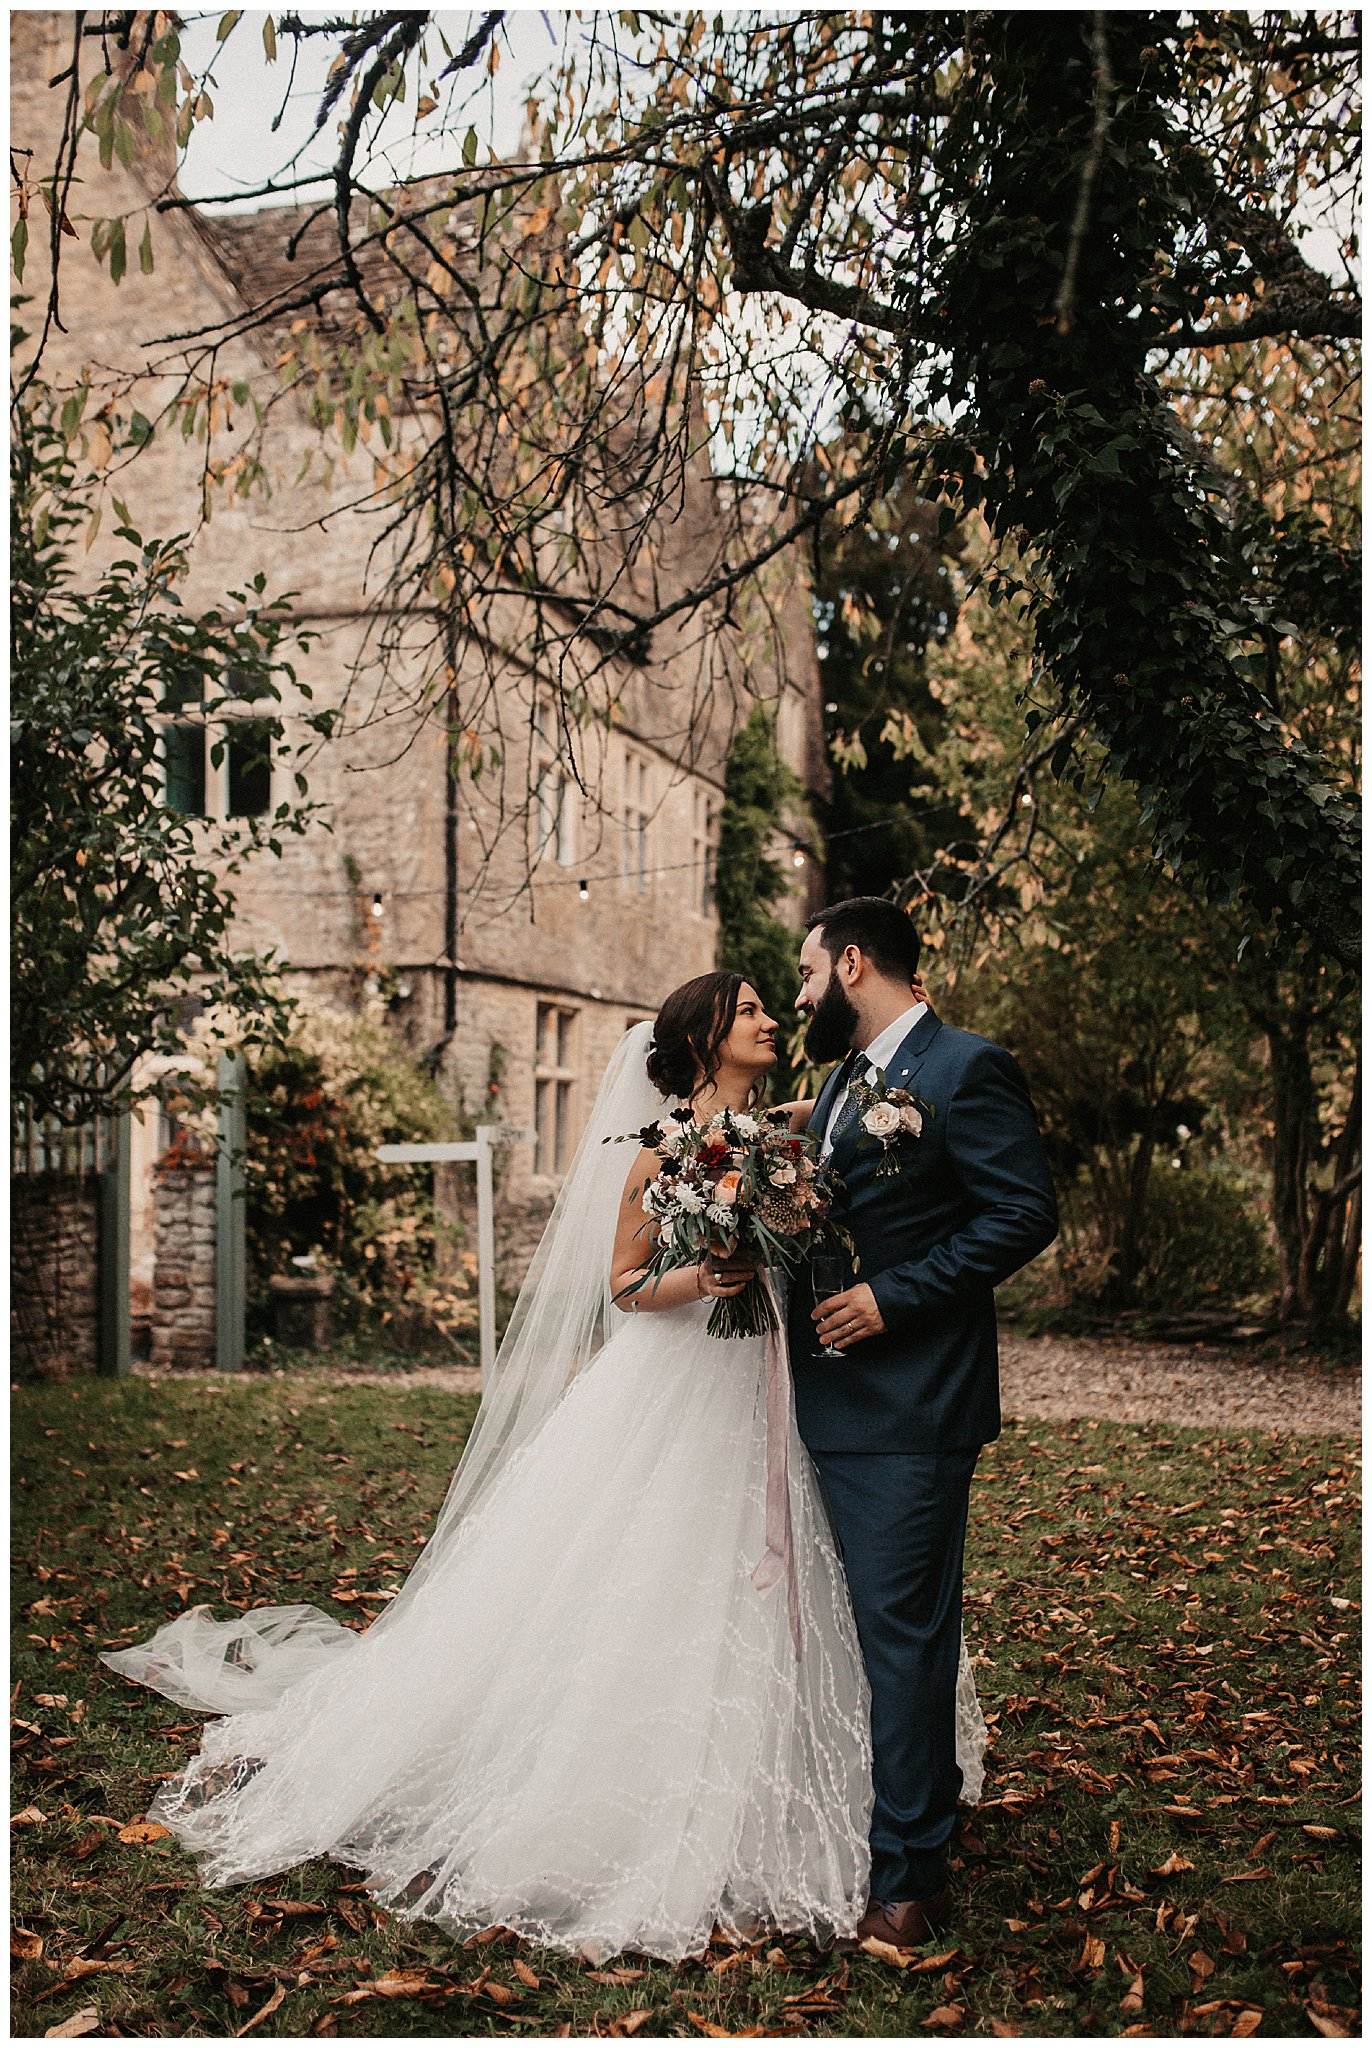 Max & Ksenia Autumnal Wiltshire Wedding-397.jpg